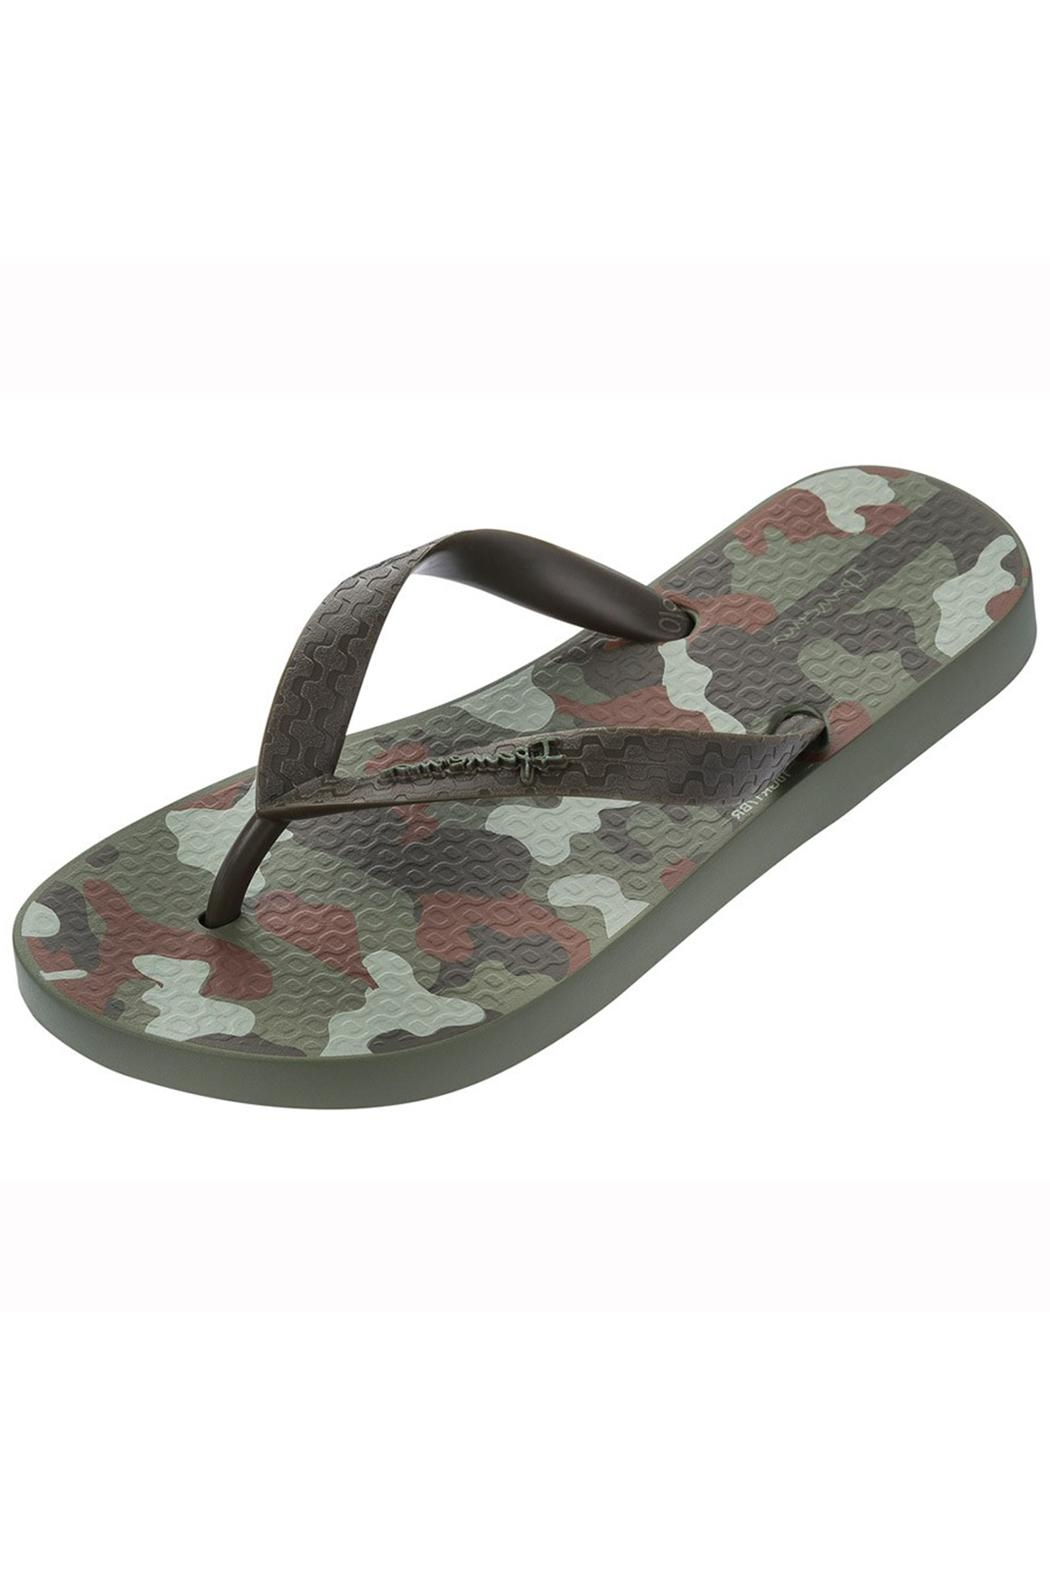 Ipanema Kid's Camo Sandal - Front Cropped Image